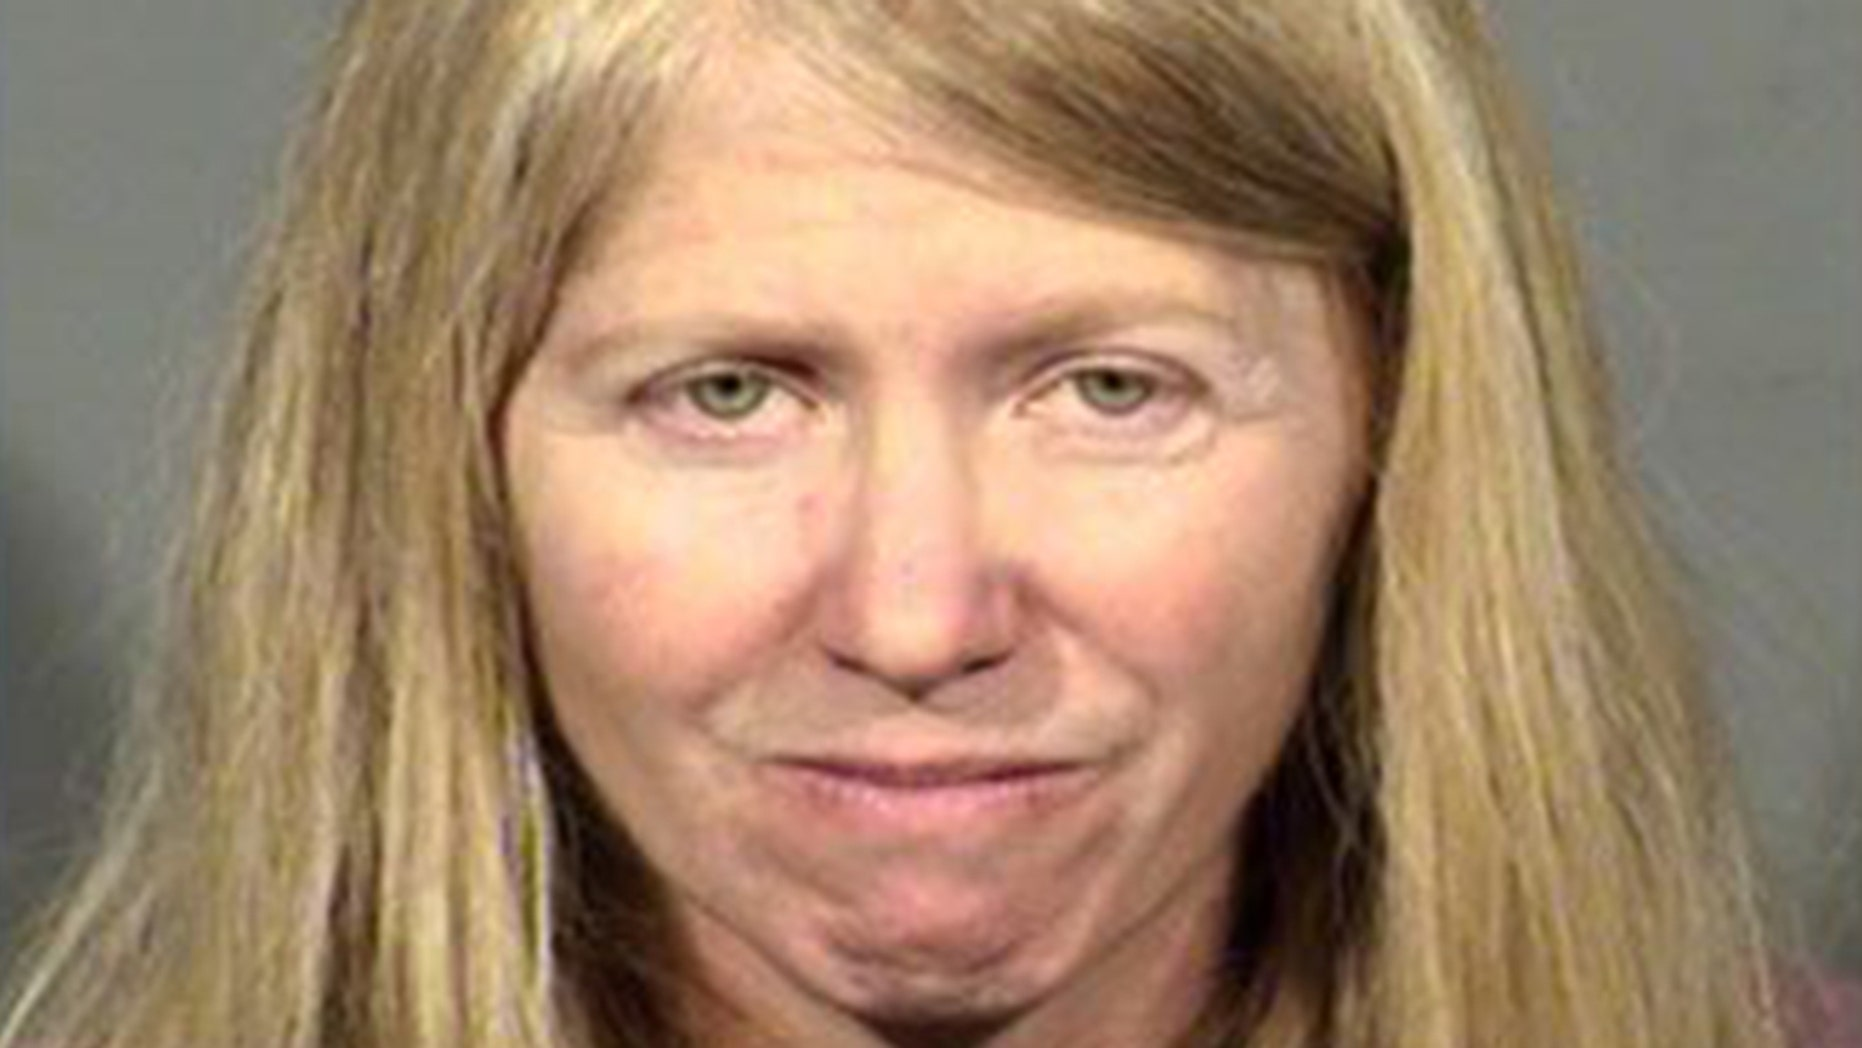 Mugshot for Leslie McGourty charged this month with threatening to shoot up a concert.